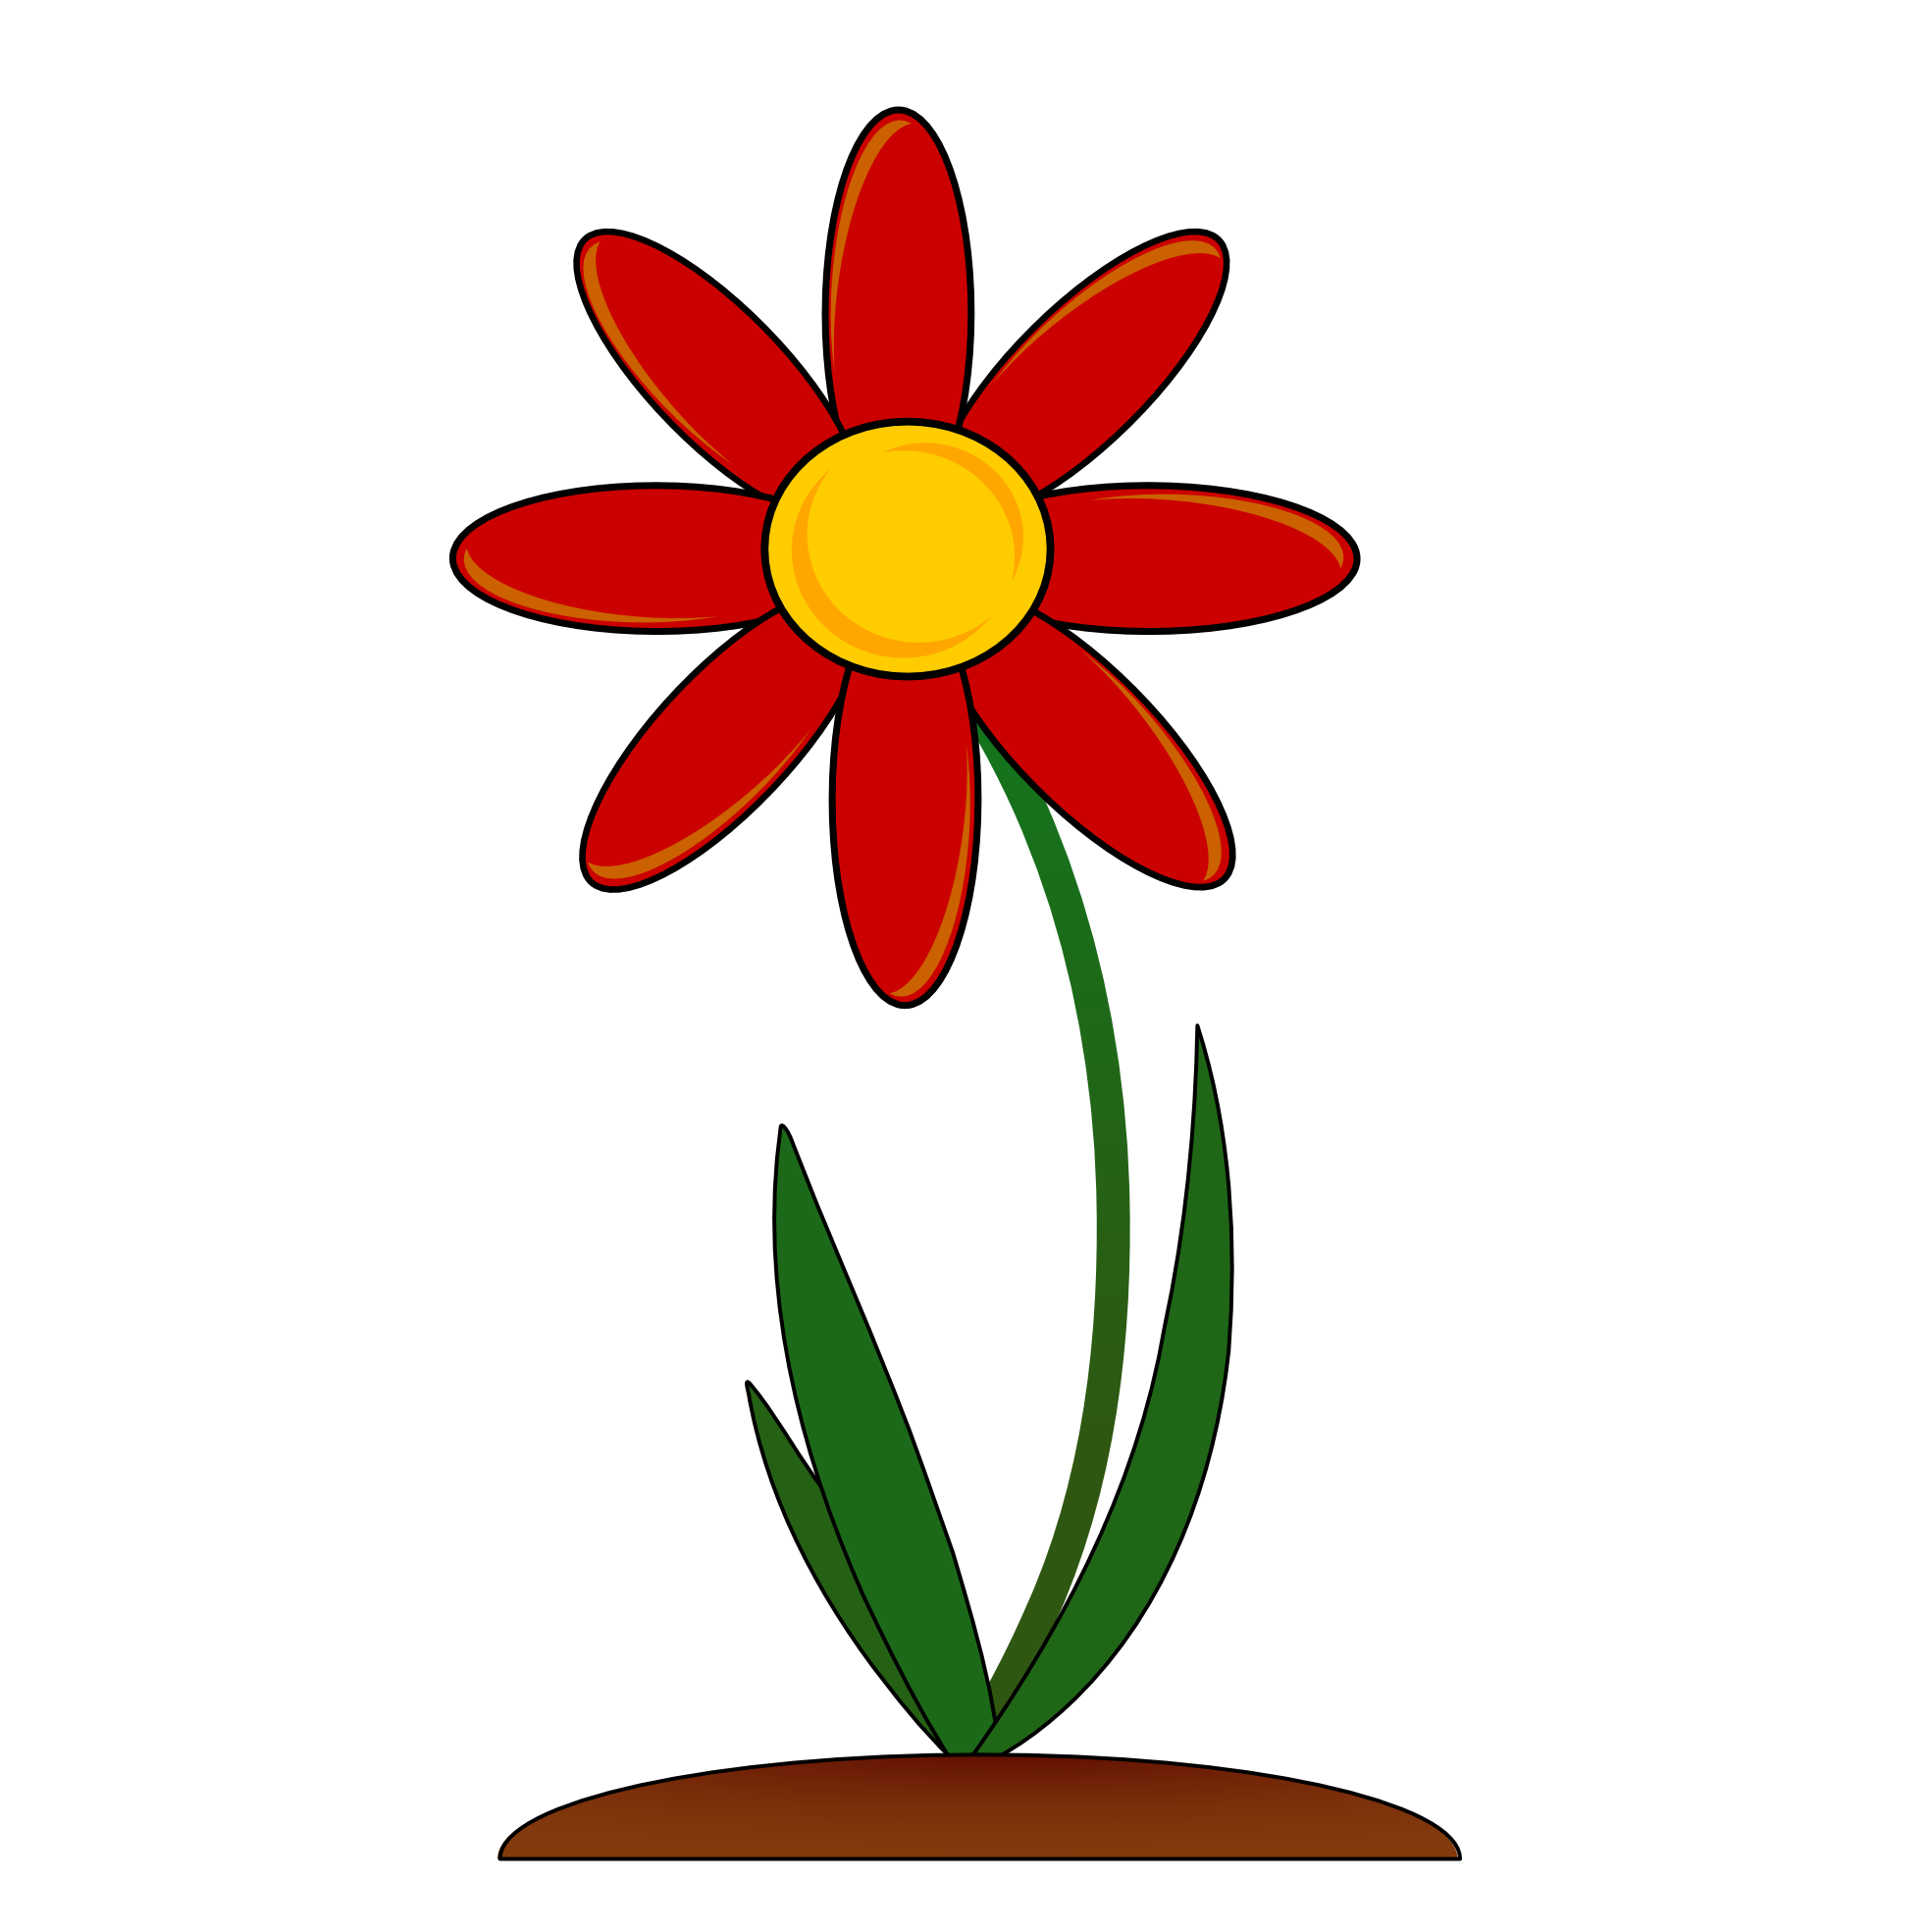 1969x1969 Red Flower Border Clip Art Free Clipart Images 2